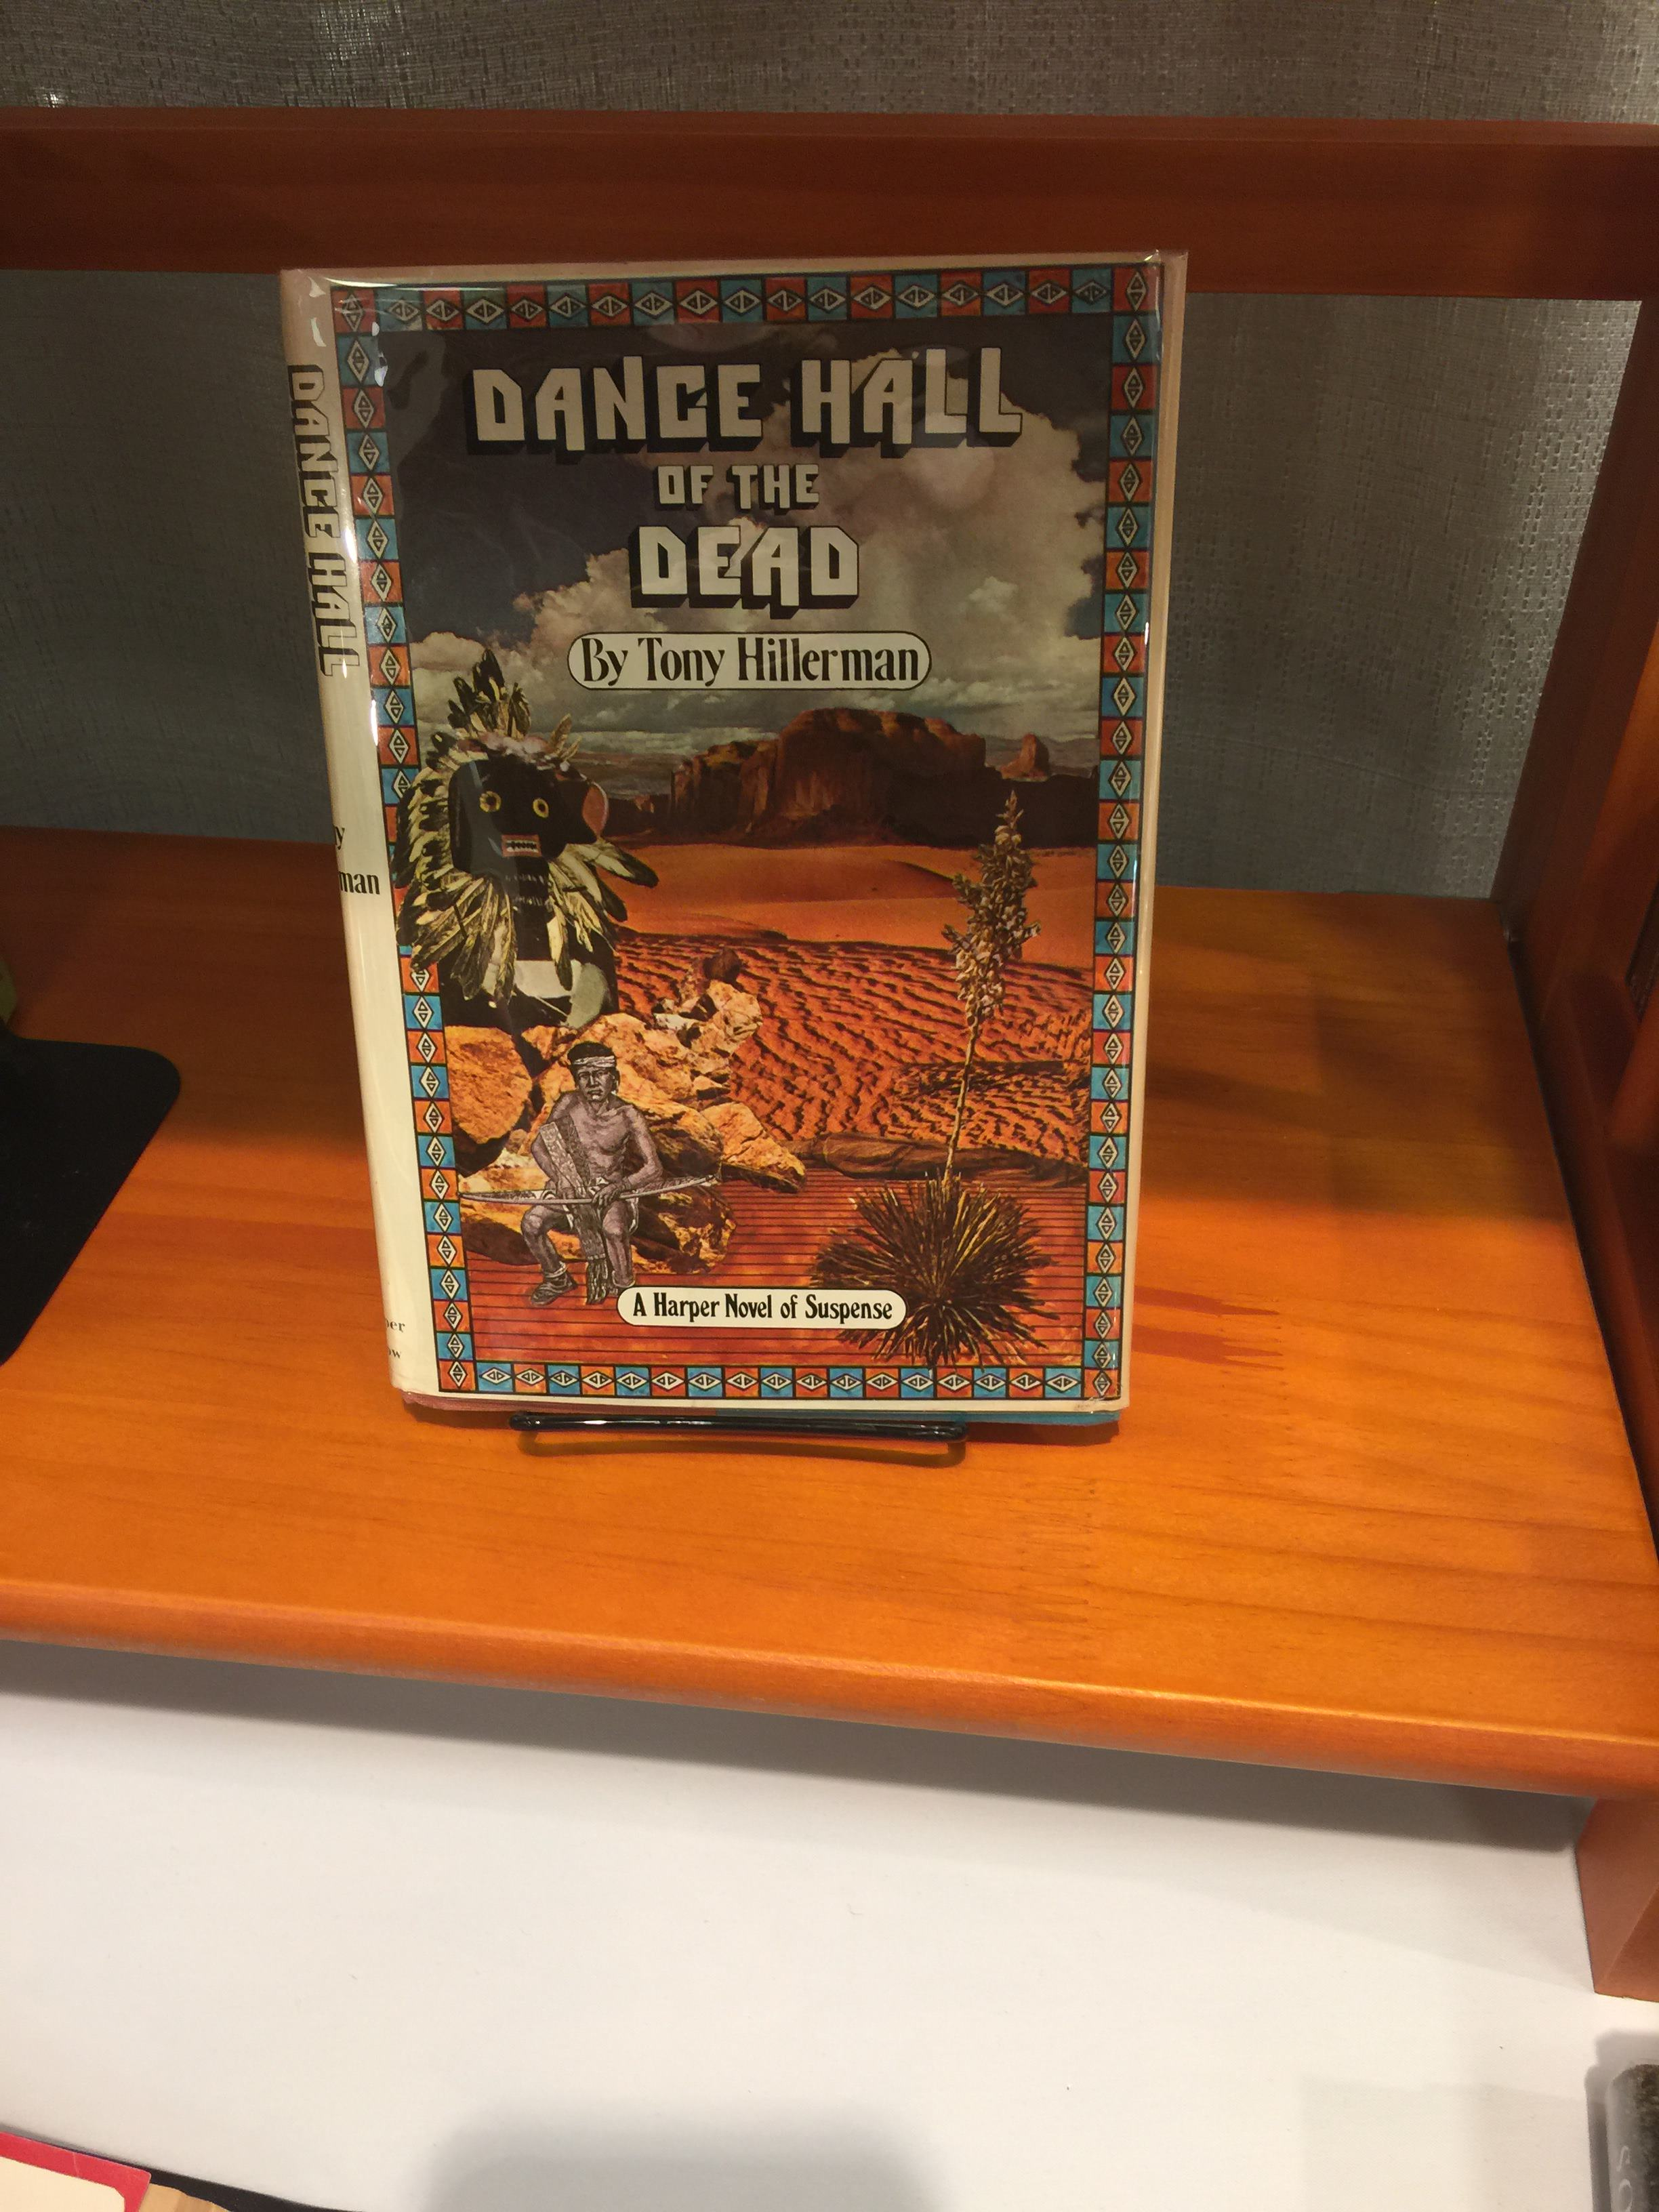 Dance Hall of the Dead by Tony Hillerman, first edition